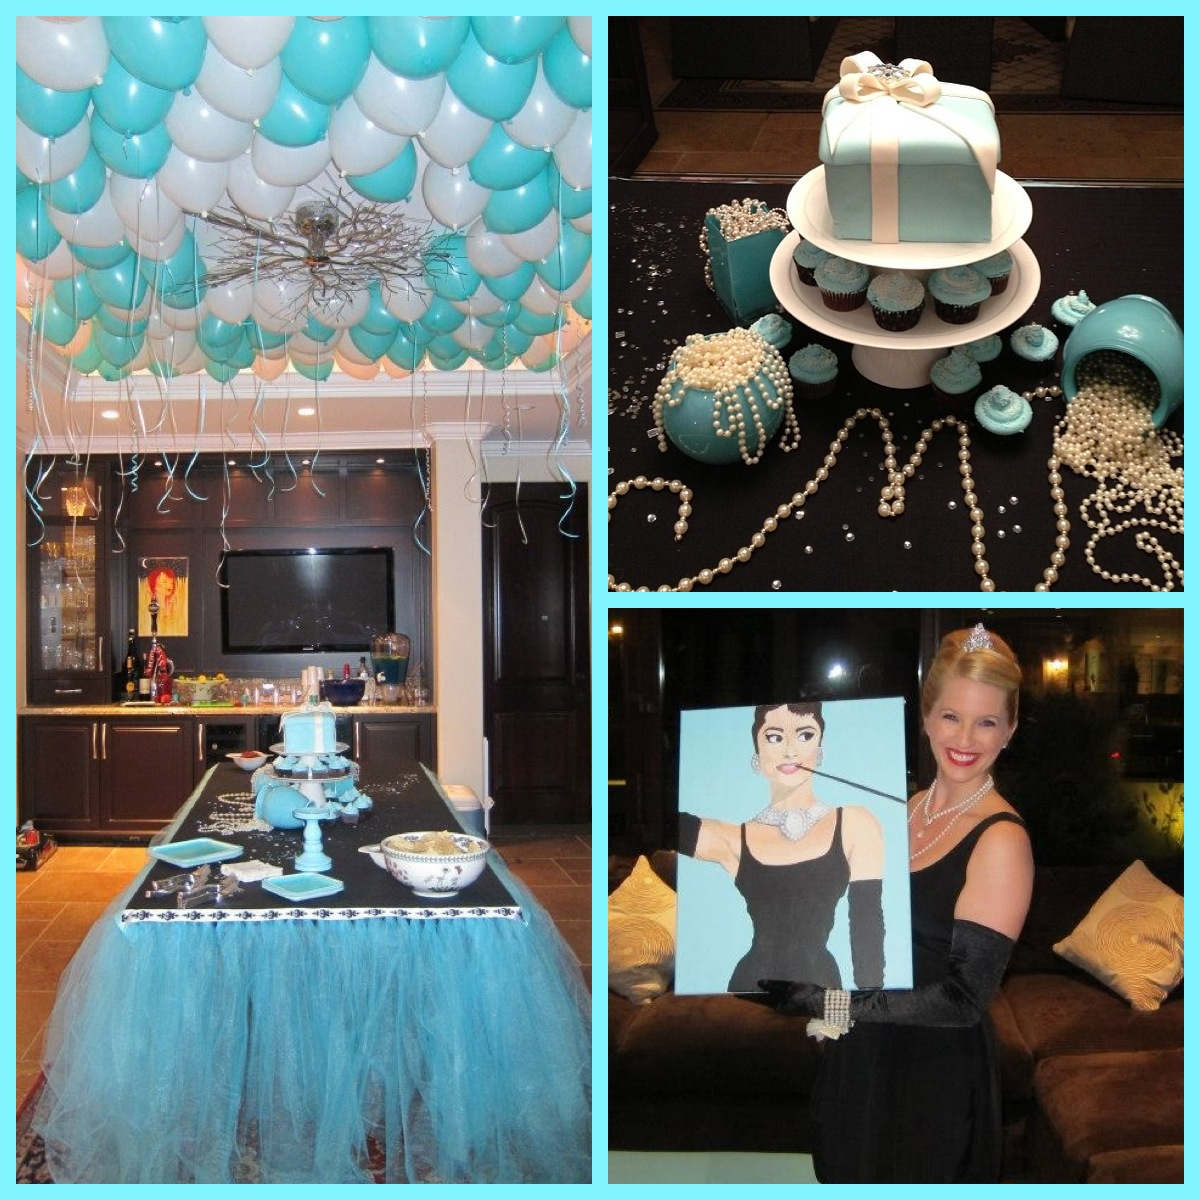 Party Decorations Halloween: With Love, Mags: My Breakfast At Tiffany's MBA Grad Party